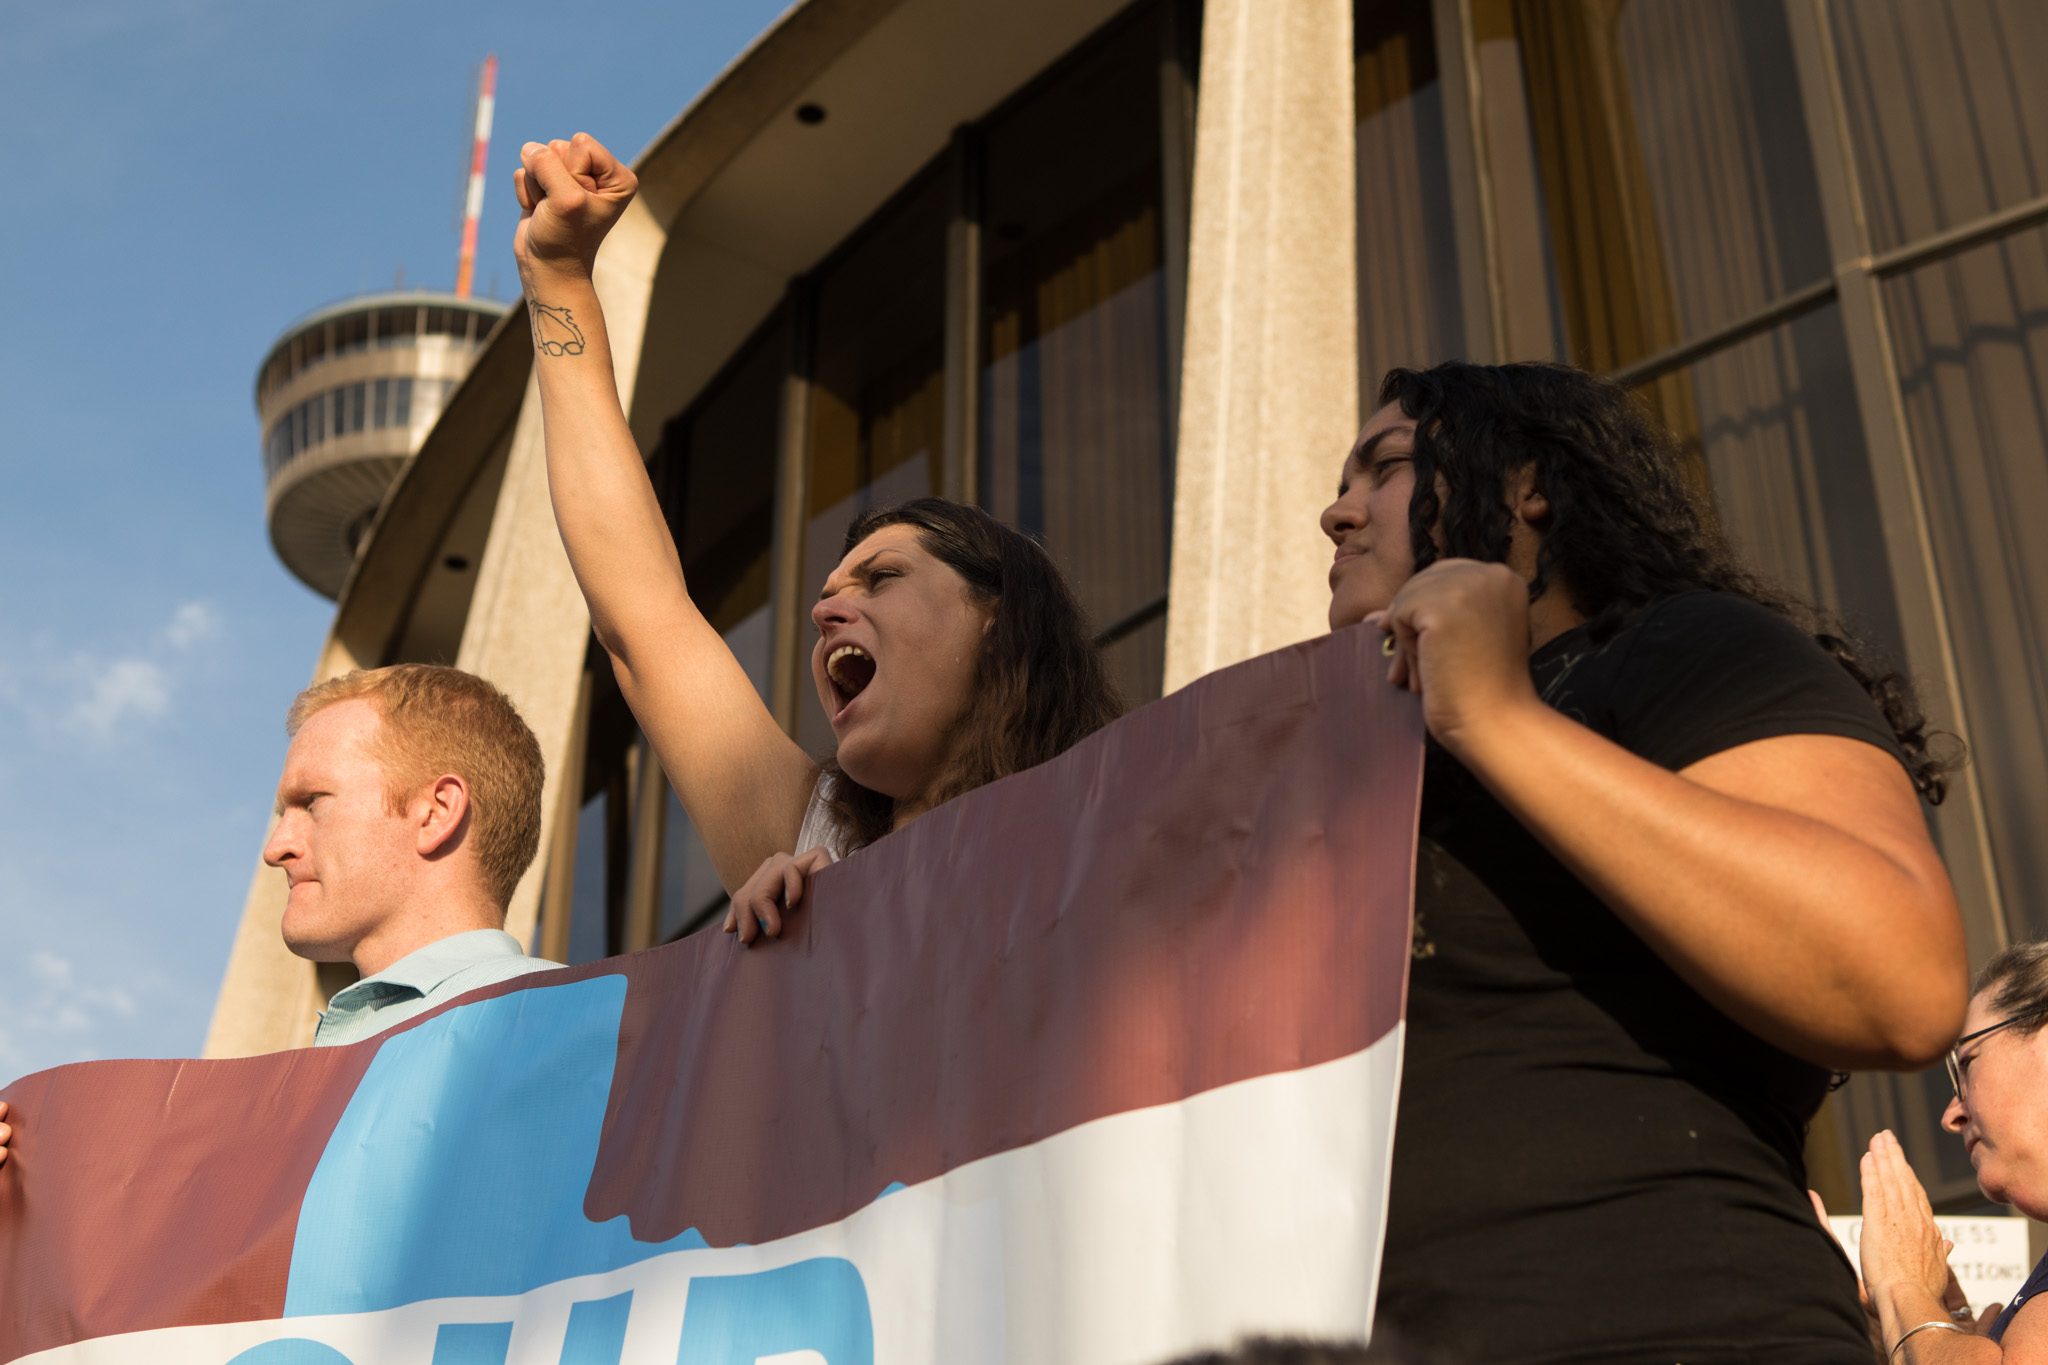 Protestors yell in support of the Deferred Action for Childhood Arrivals (DACA) program.